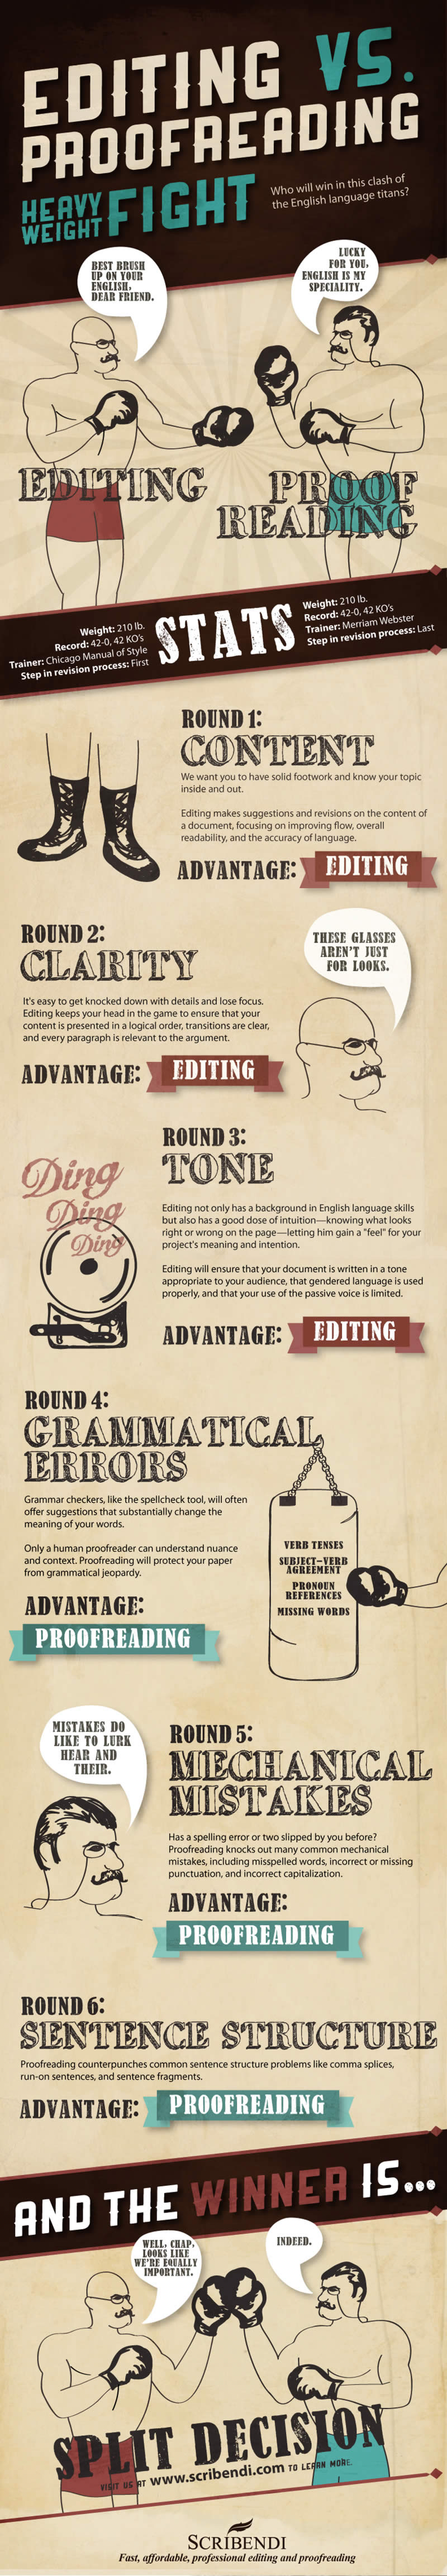 Editing vs. Proofreading: What's Most Important [Infographic]